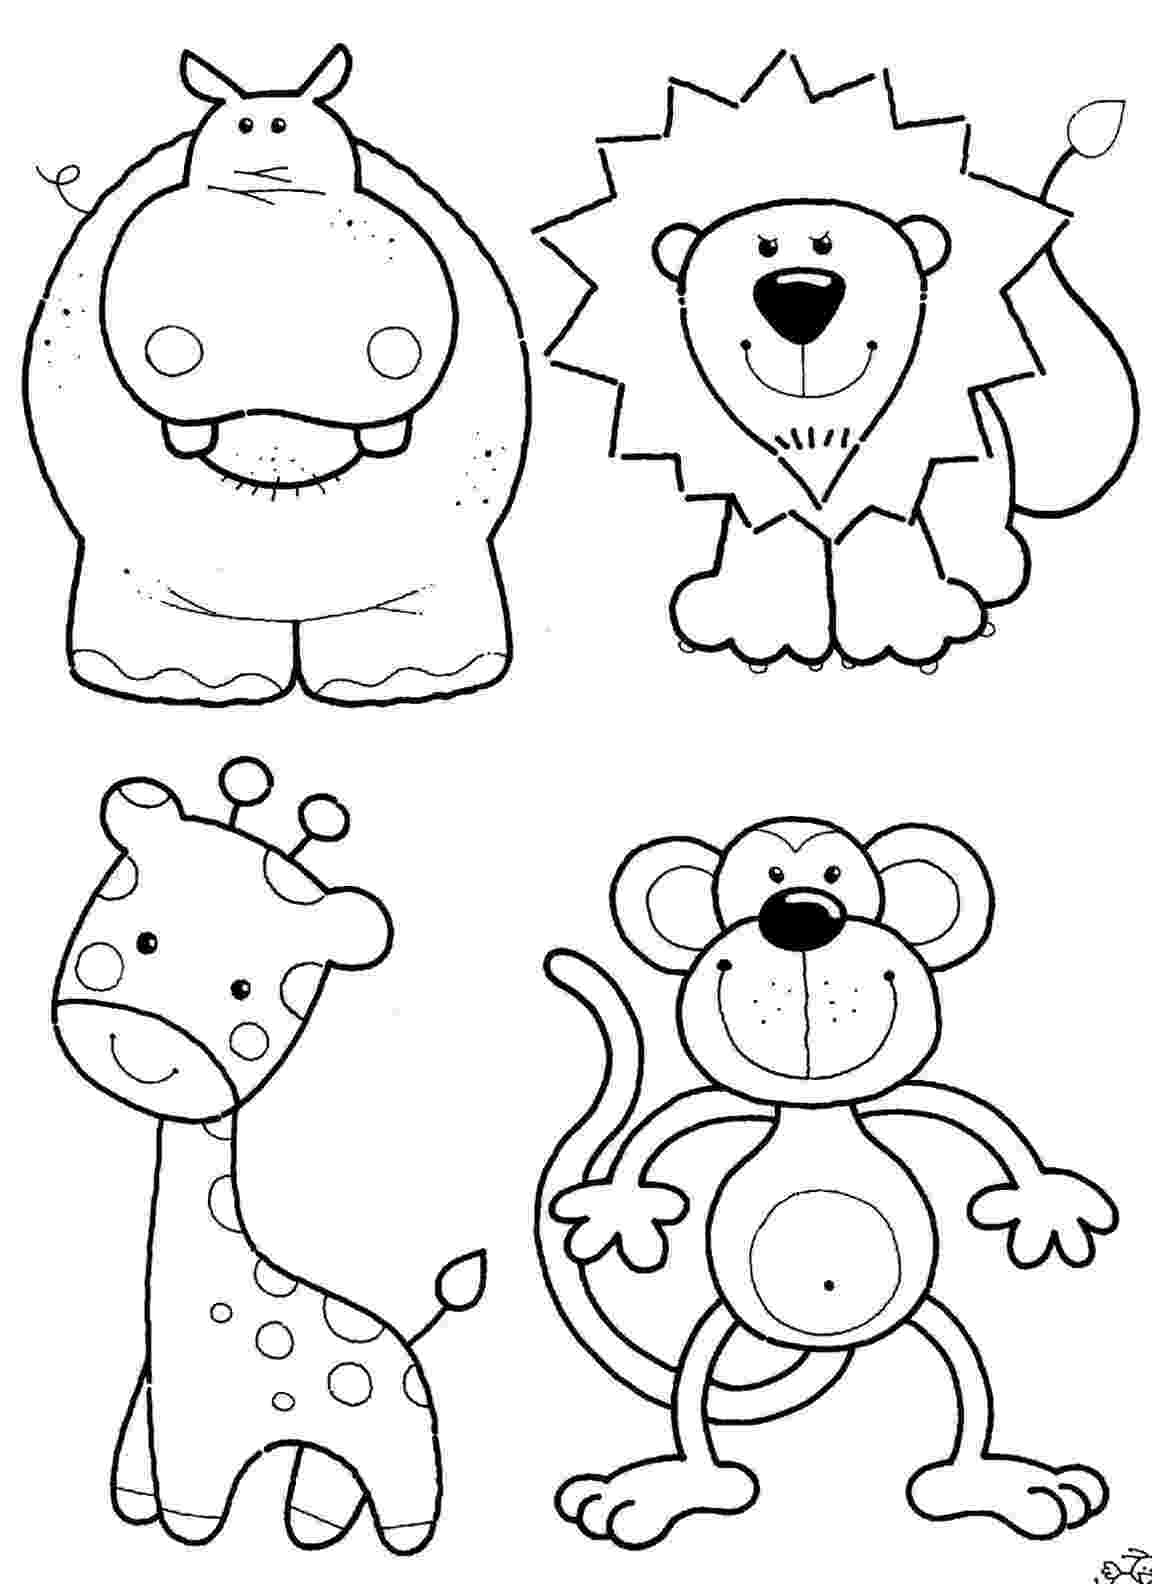 coloring pages jungle jungle coloring pages best coloring pages for kids jungle coloring pages